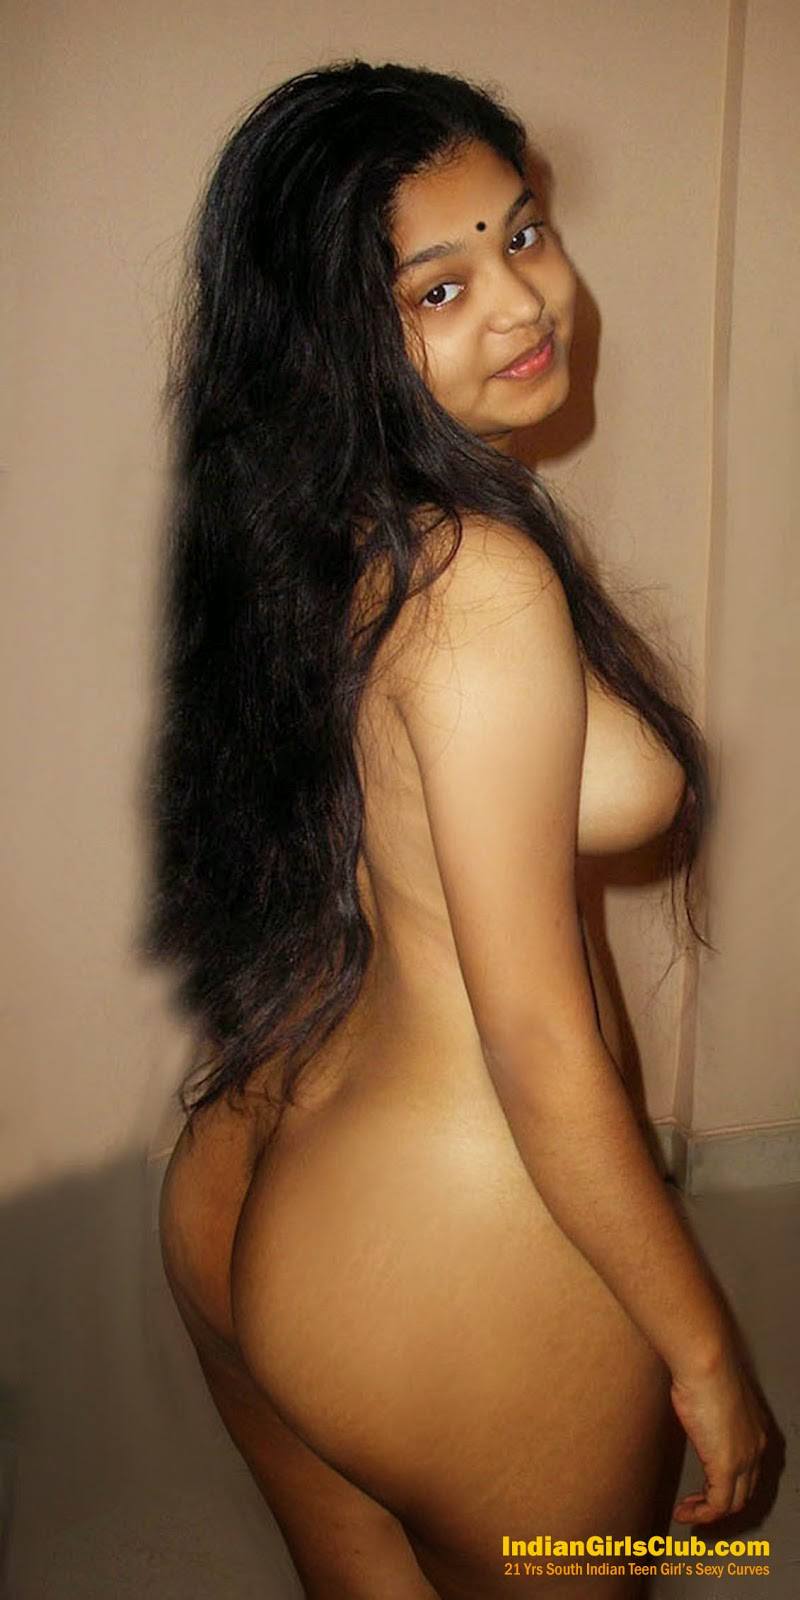 Indian Women Nude Photo - Photo Xxx-2377